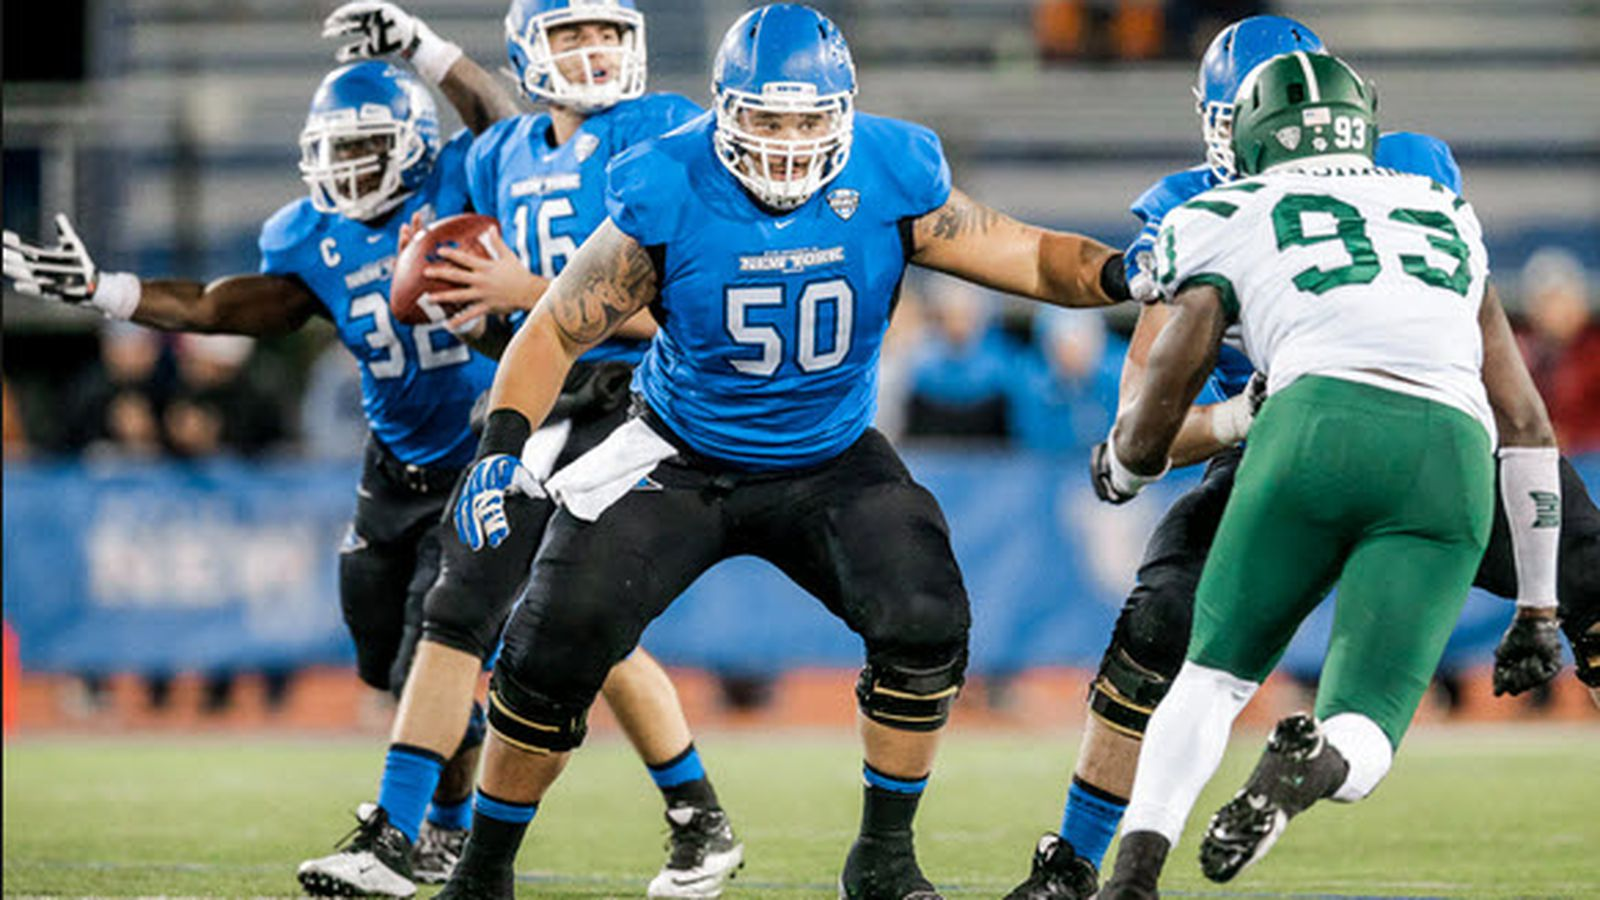 Jerseys NFL Outlet - Top MAC Football Players Of 2014: No. 37 Andre Davis, Buffalo OL ...